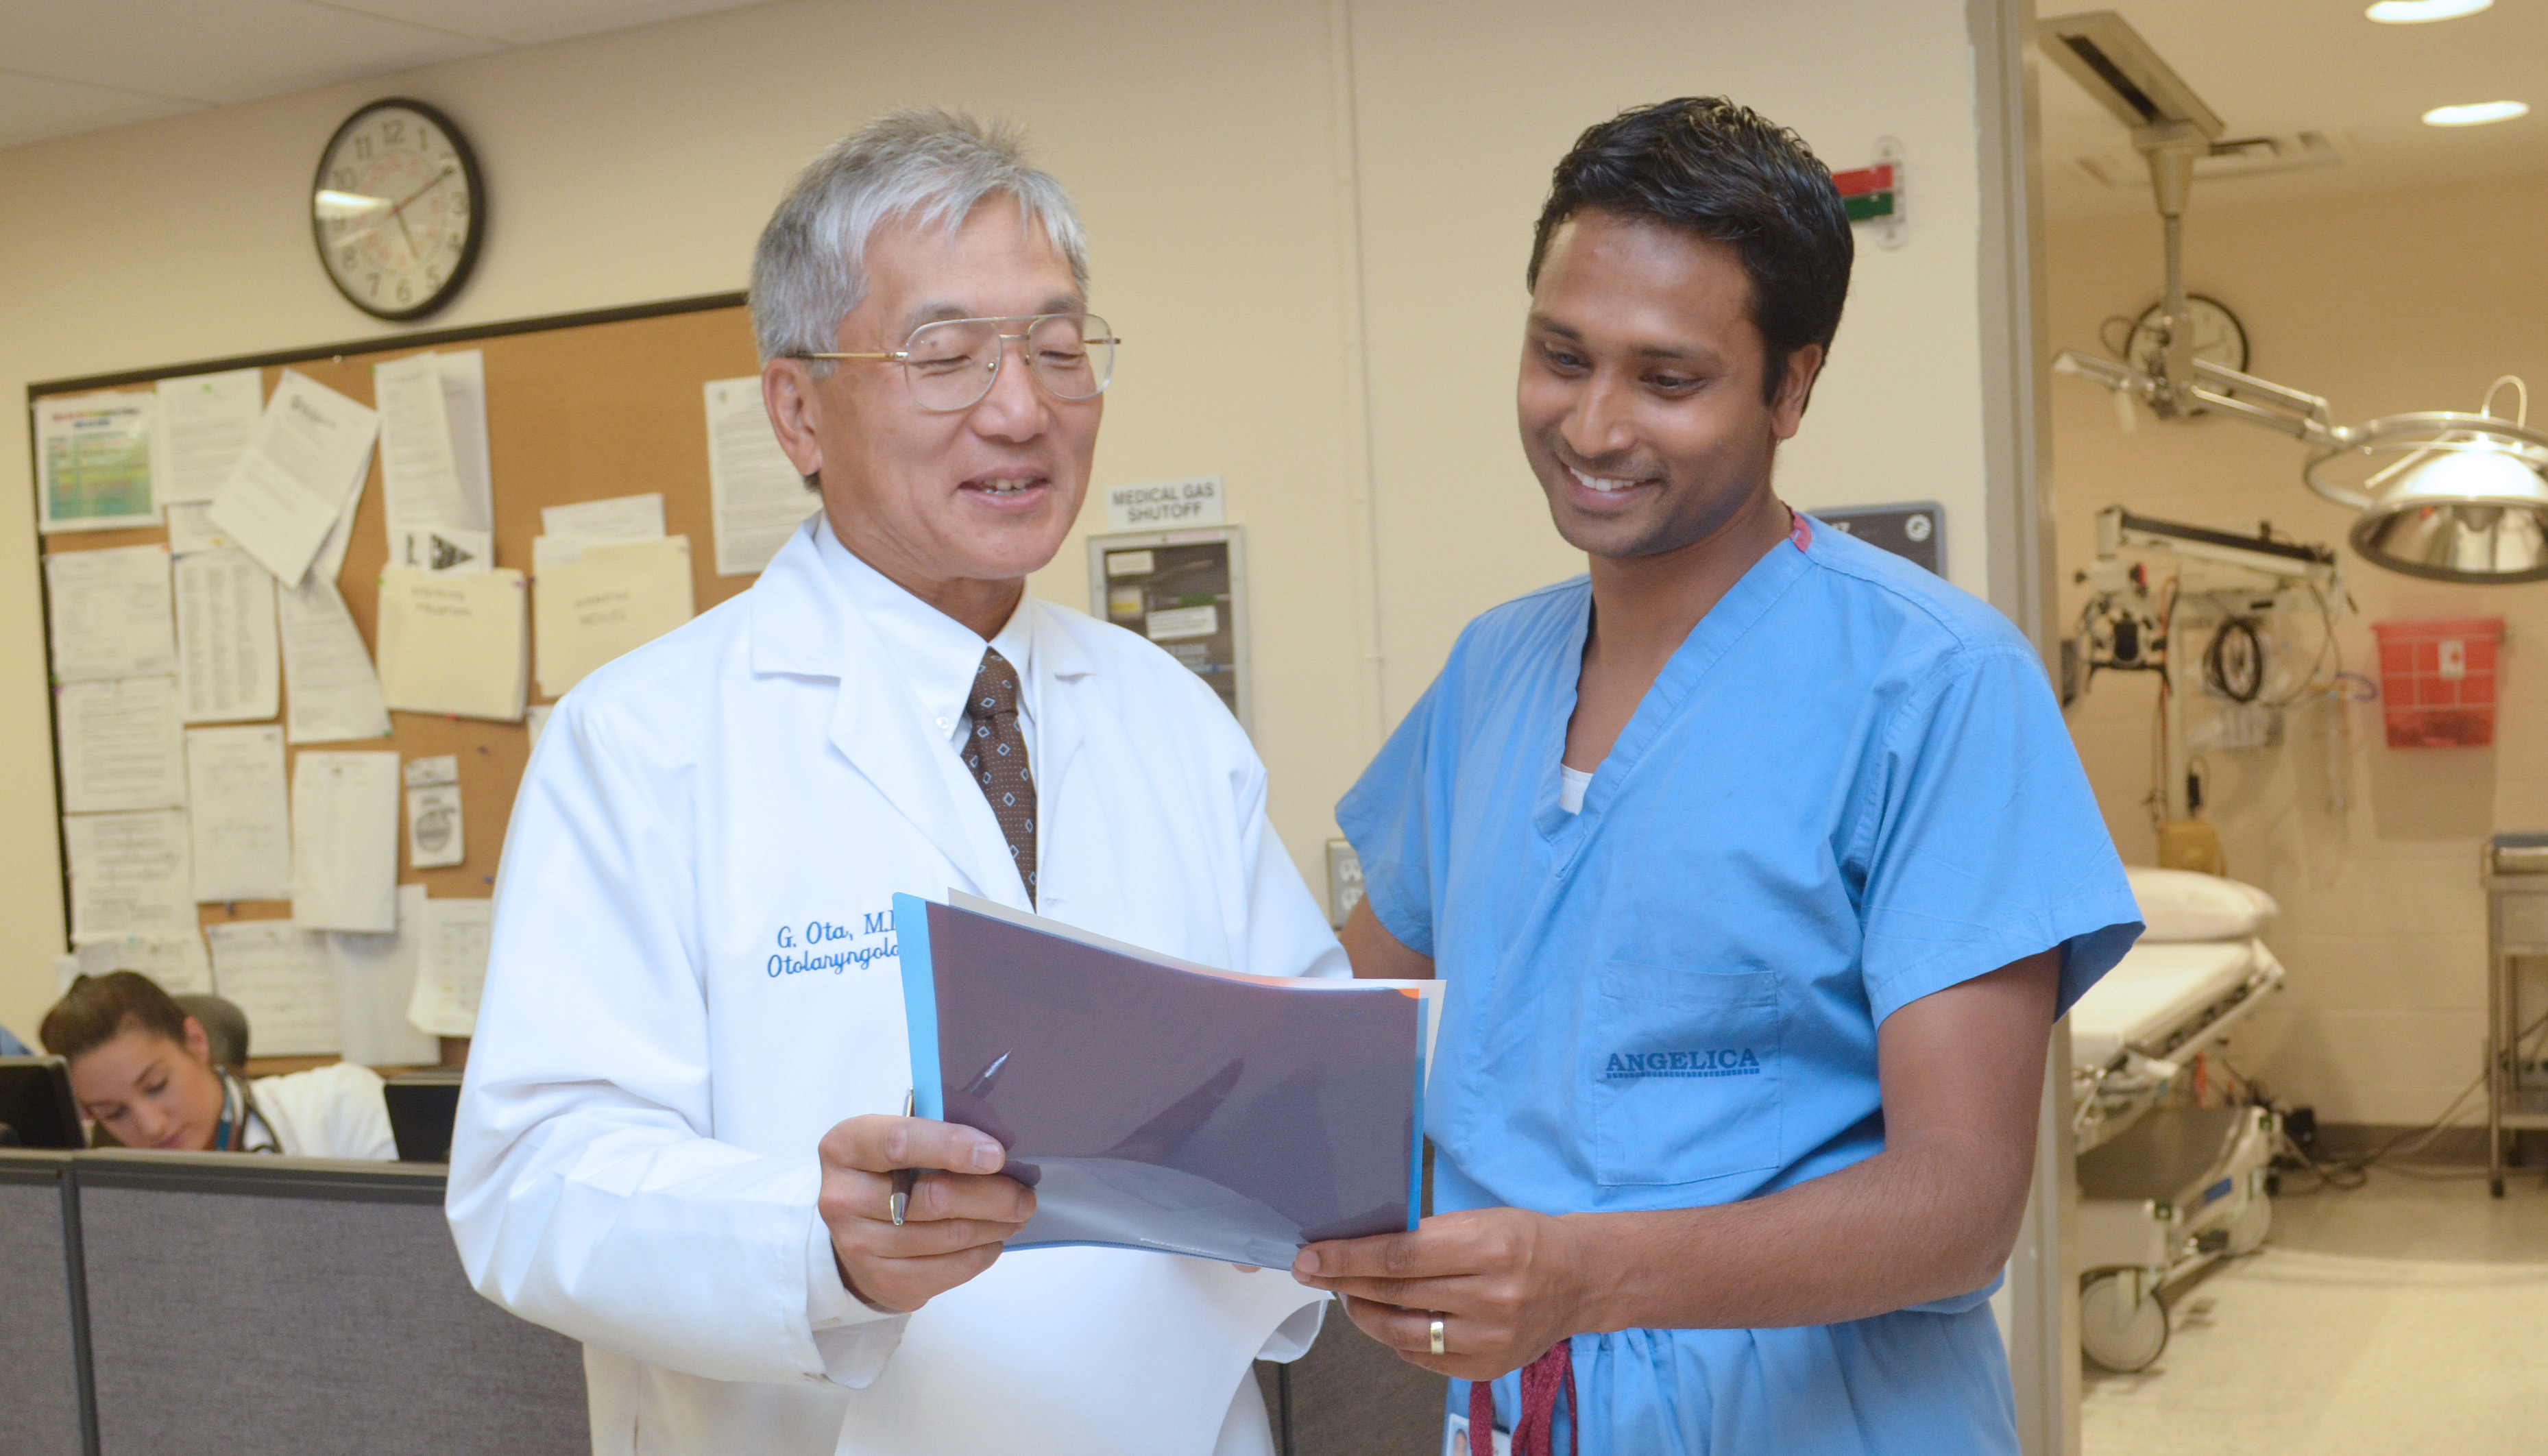 10 Questions with an Otolaryngology Resident - FOCUS - A health blog